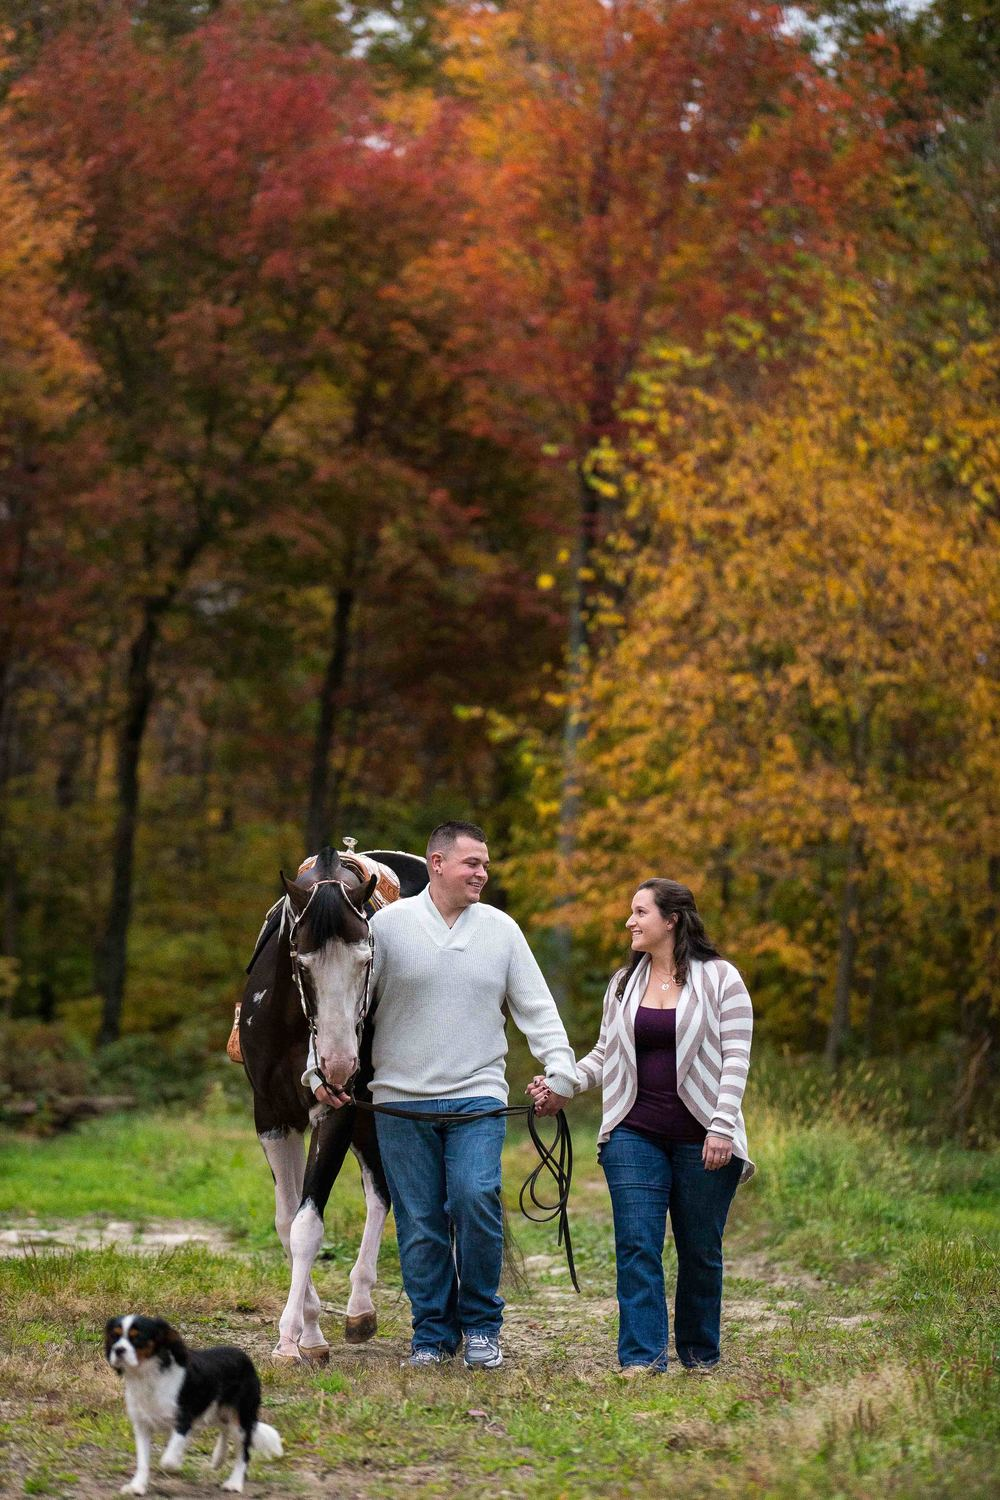 Horses-Engagement-Photography-by-Jacek-Dolata-CT-MA-RI-NJ-NYC-NY-VT-NH-PA-4.jpg